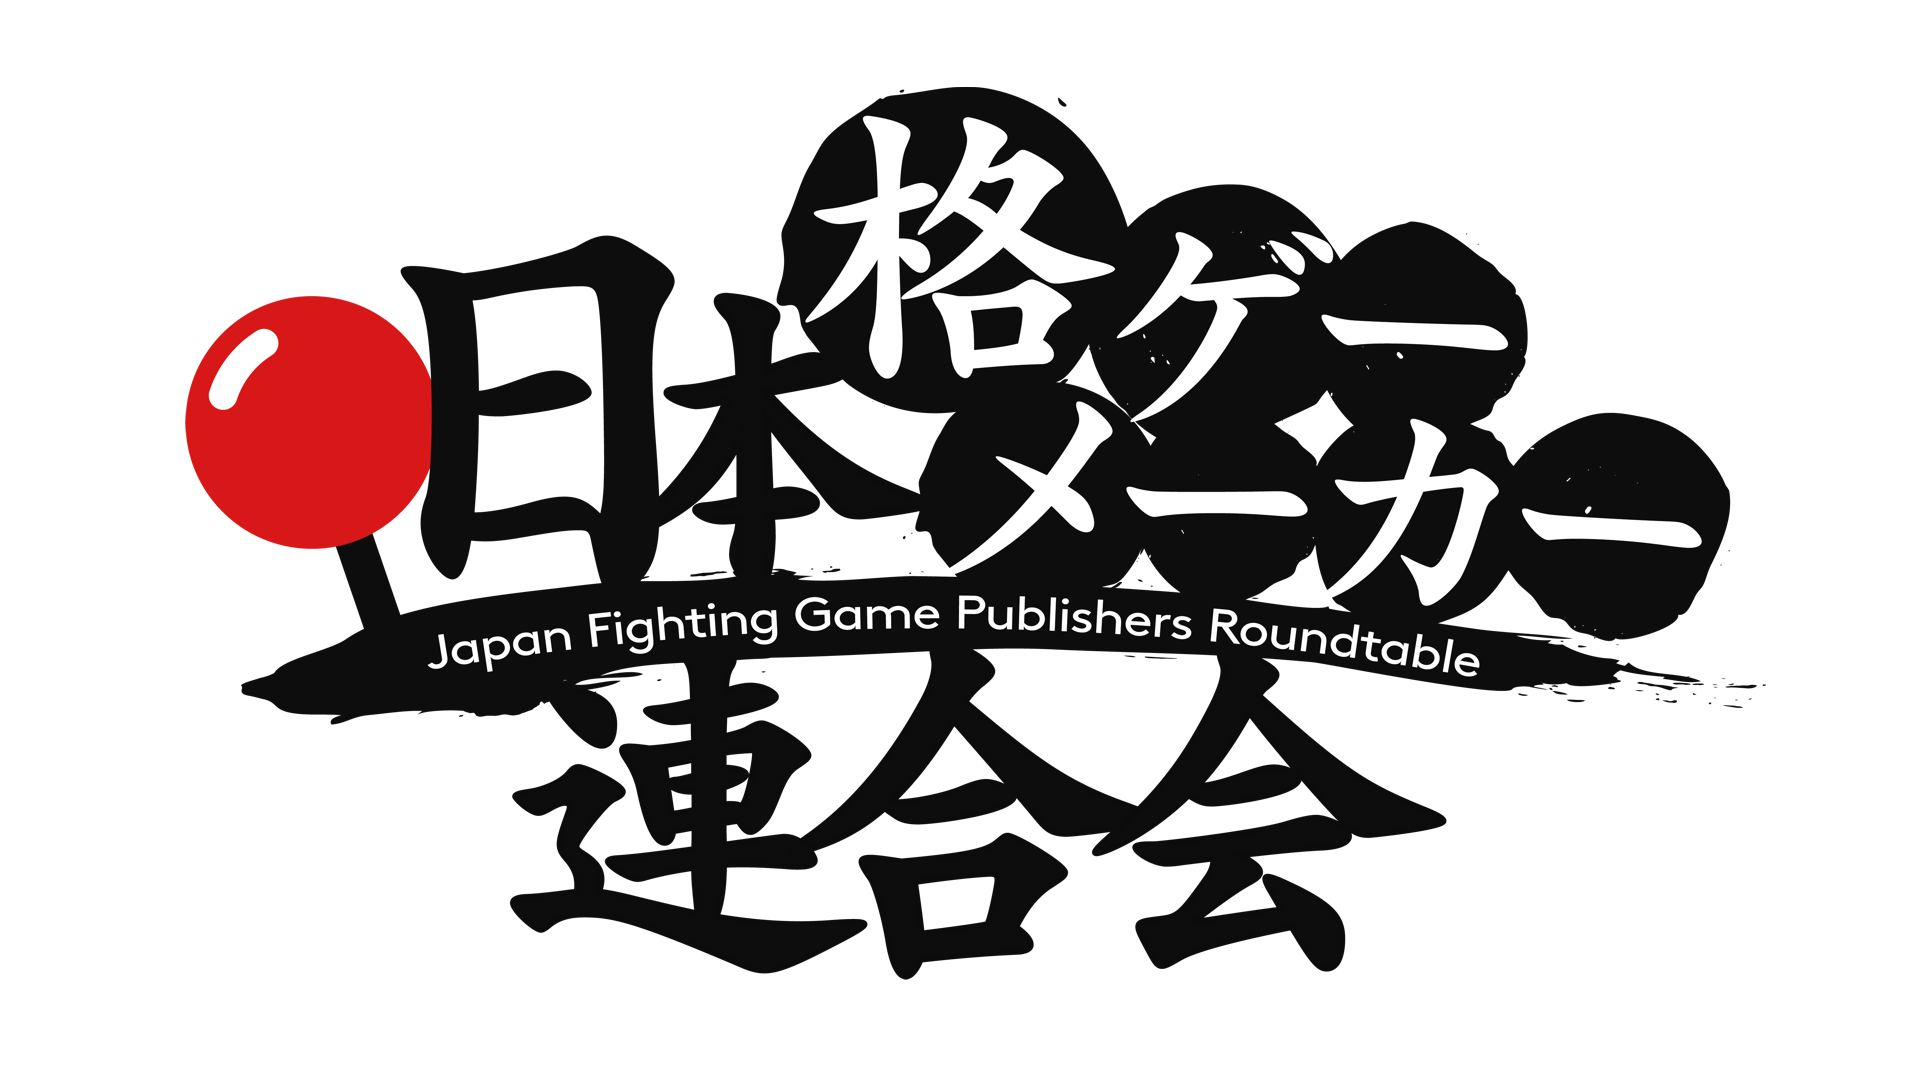 Japan Fighting Game Publishers Roundtable